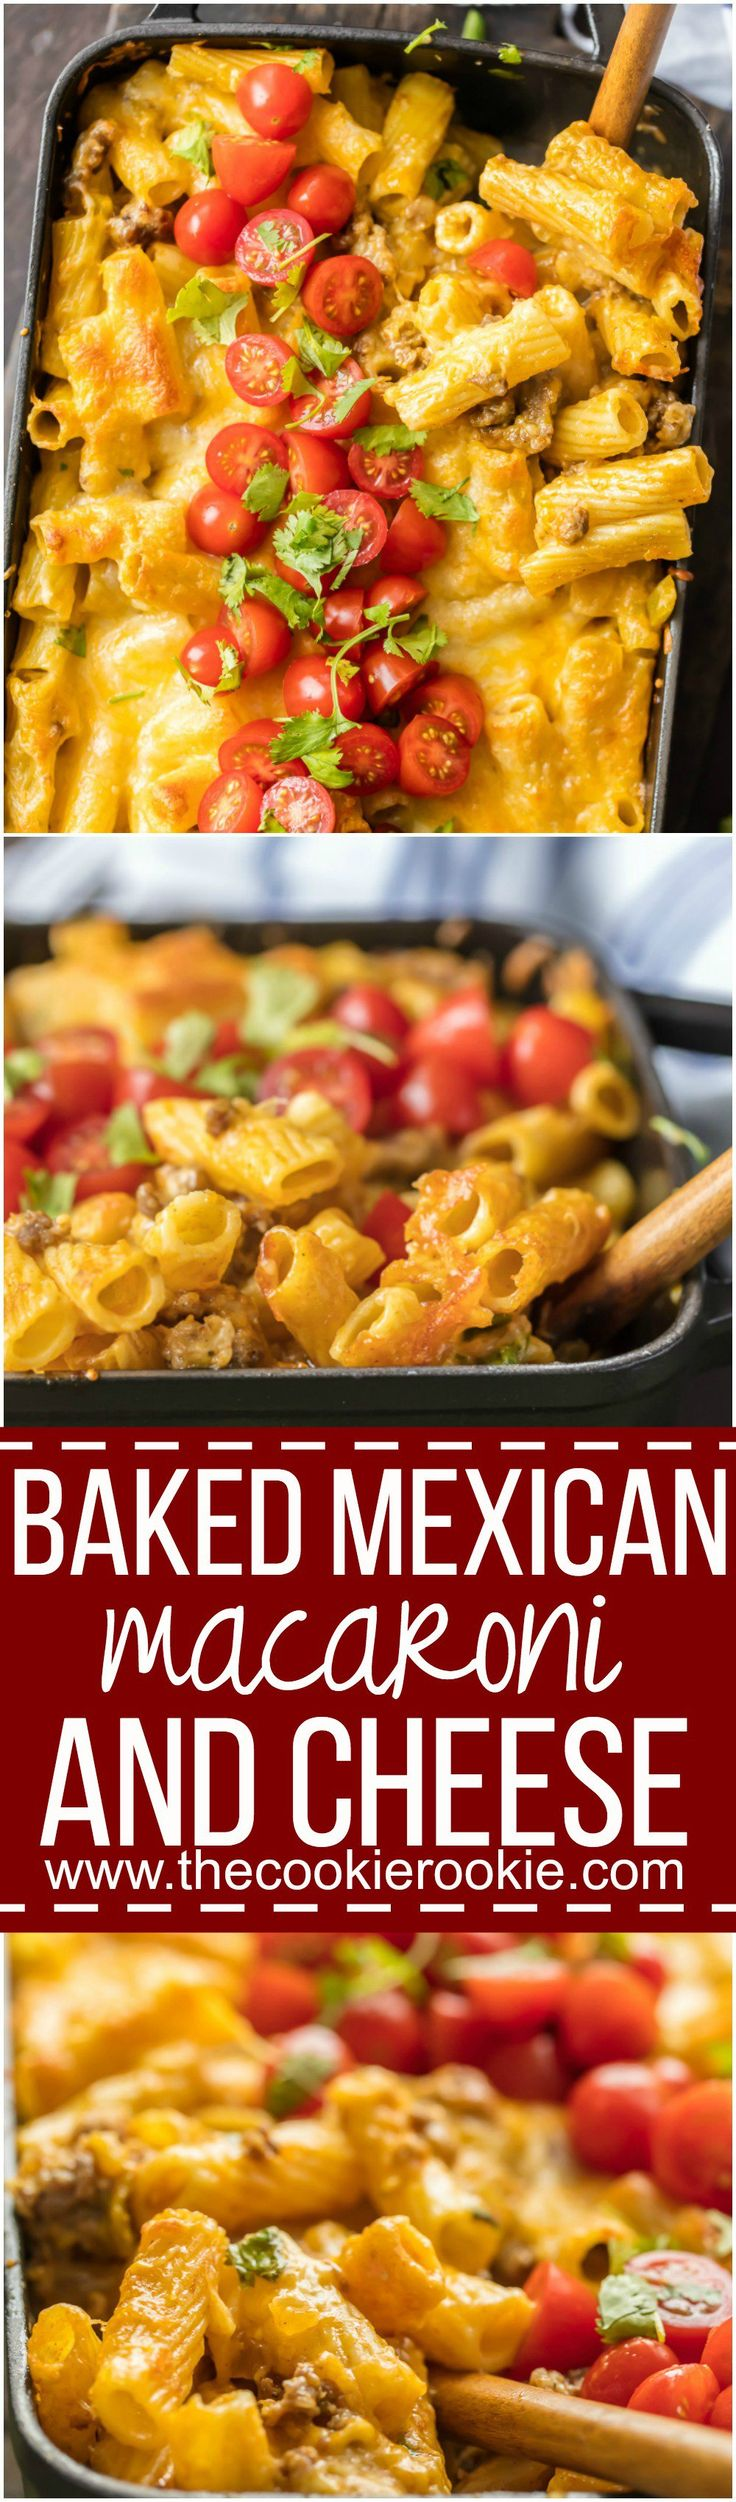 This BAKED MEXICAN MACARONI AND CHEESE can't be beat! No need to fool with a tricky cheese sauce when you have this secret ingredient making things extra creamy and delicious! Spicy sausage, green chiles, macaroni and cheese! via @beckygallhardin